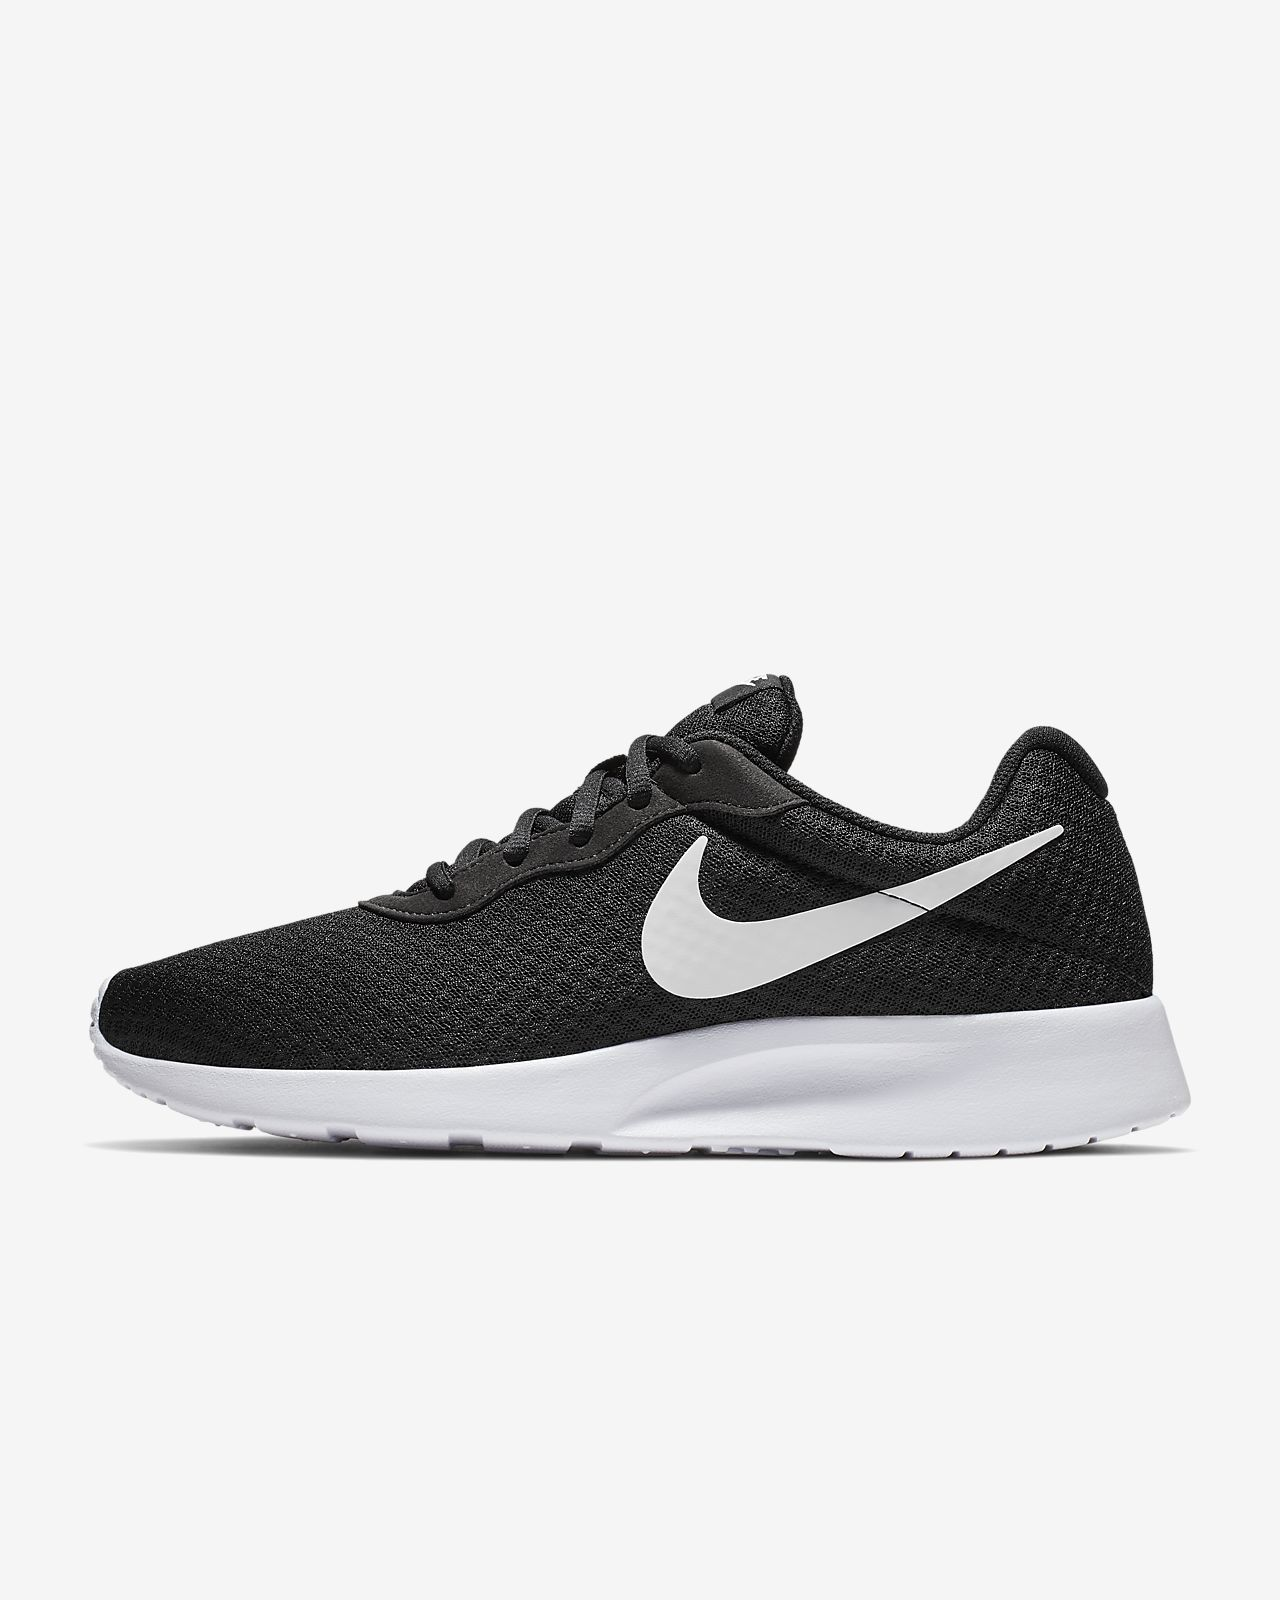 2a4eb677294df Low Resolution Nike Tanjun Men s Shoe Nike Tanjun Men s Shoe